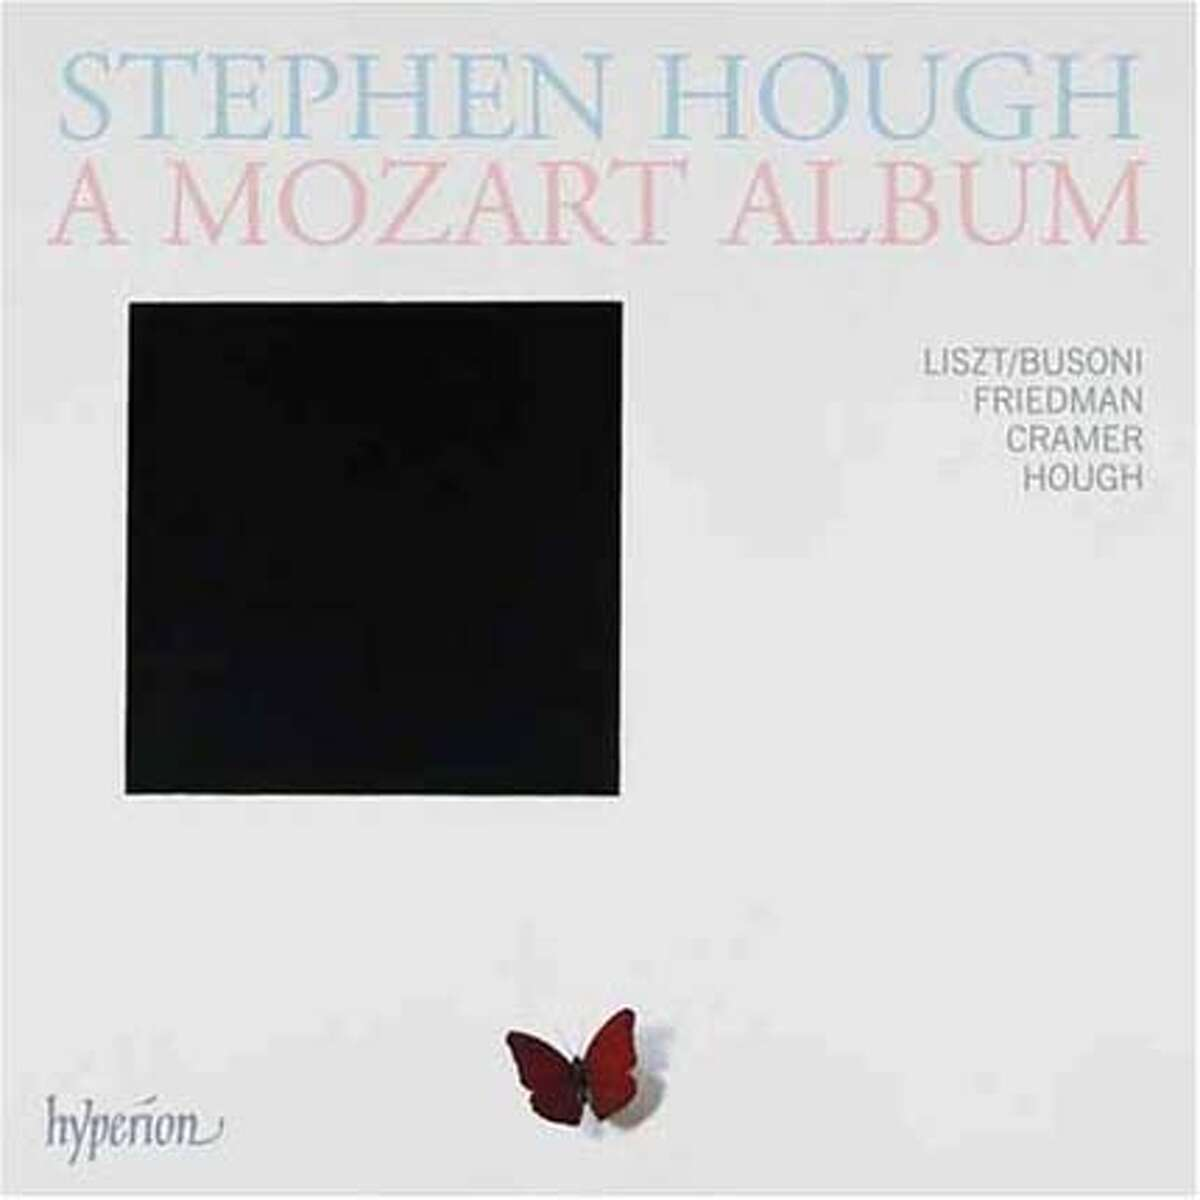 CD cover for Stephen Hough's